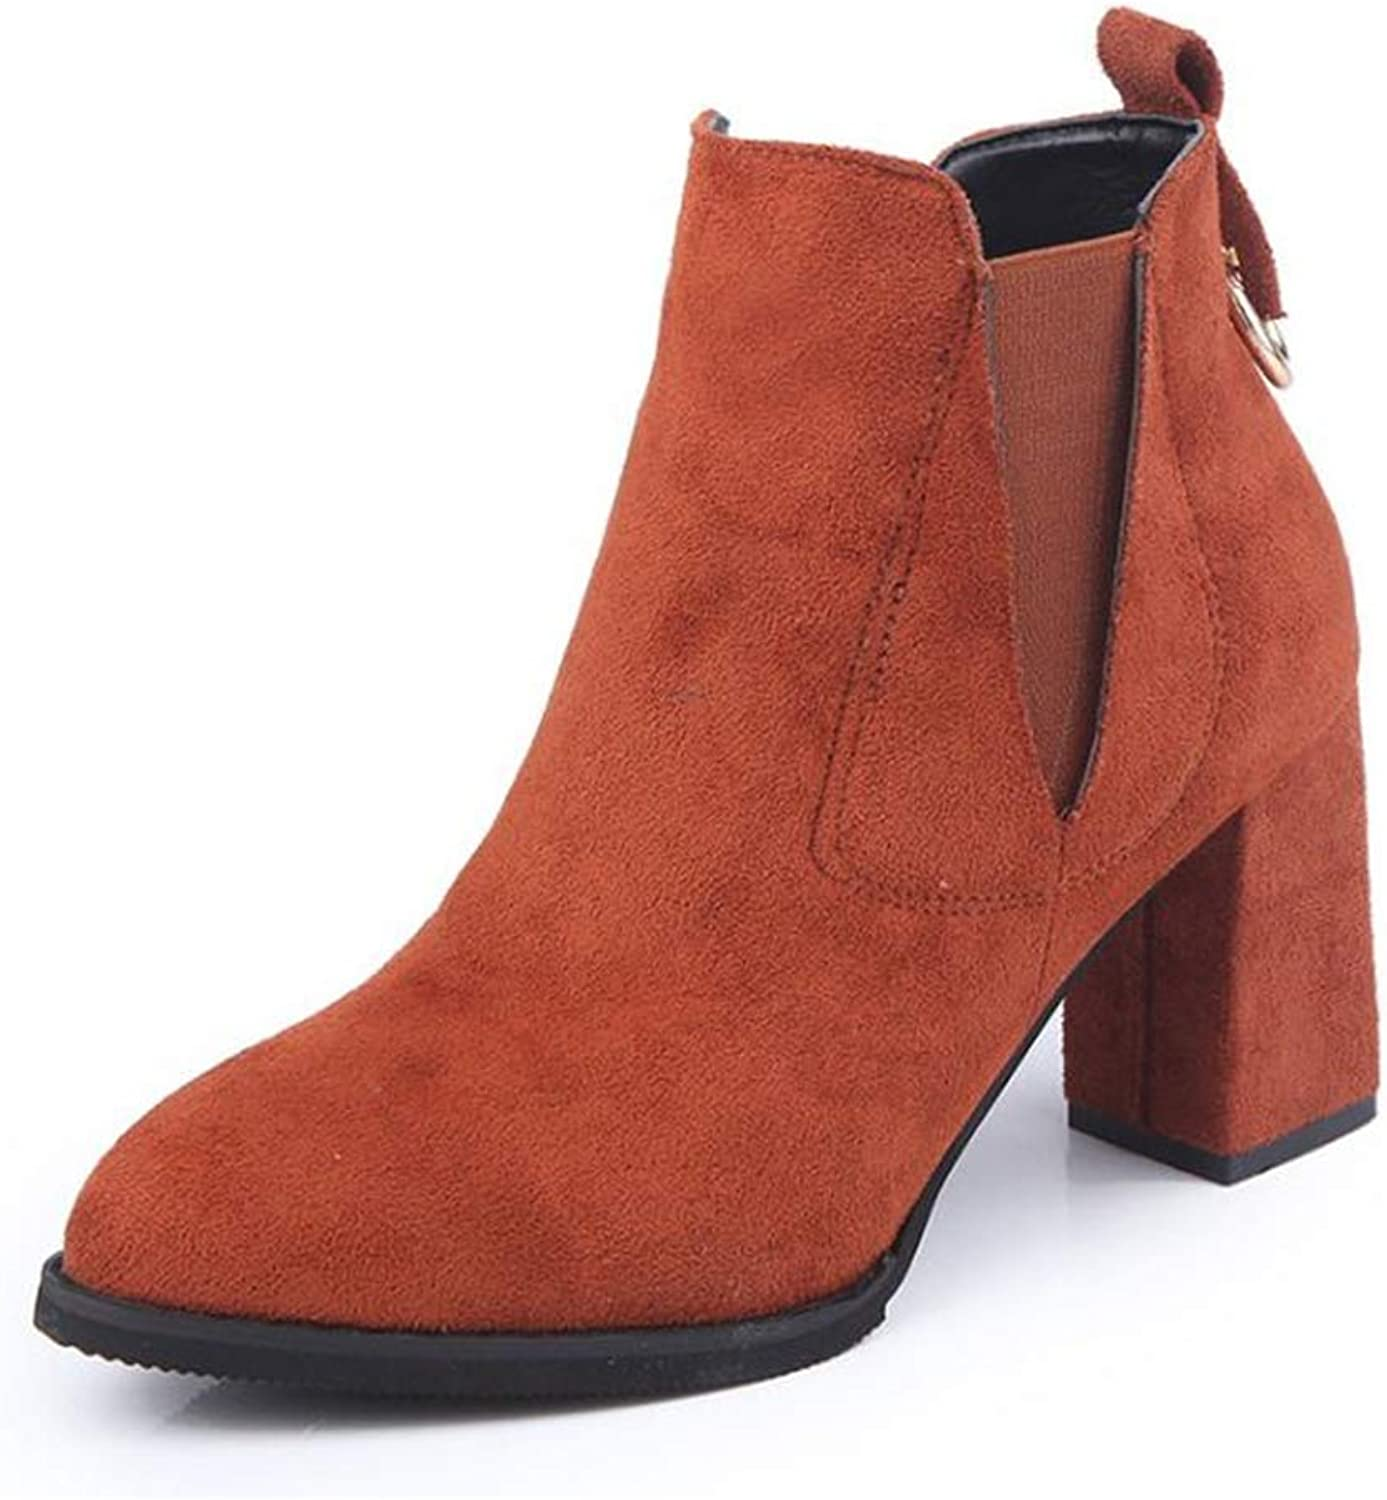 Fancyww Women's Chunky Heel Ankle Boots Platform Round Toe Comfortable Winter shoes